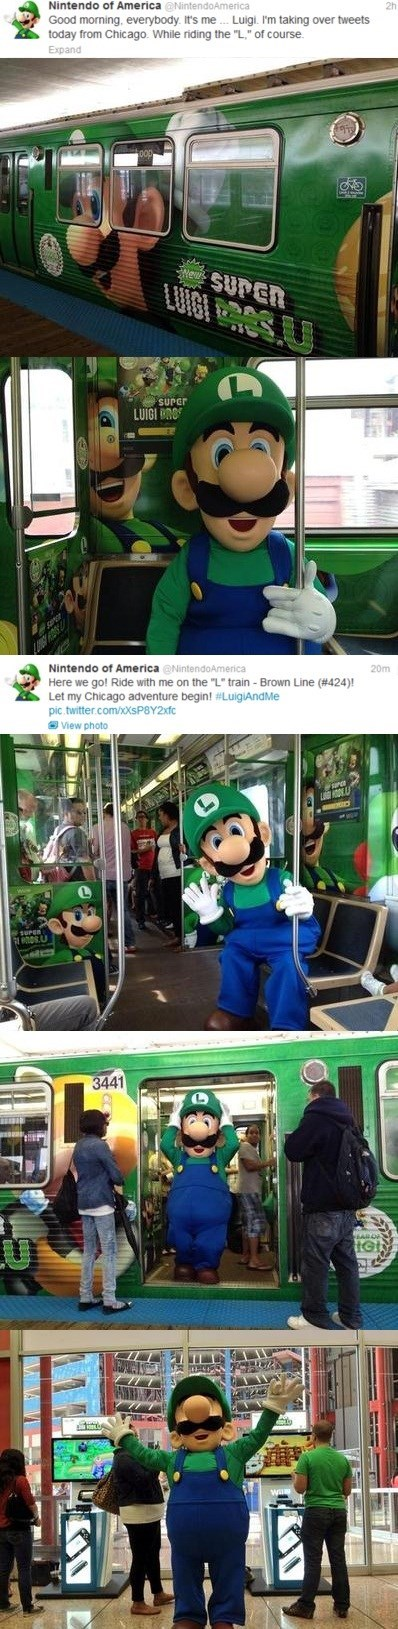 The Weegee Train Has No Brakes